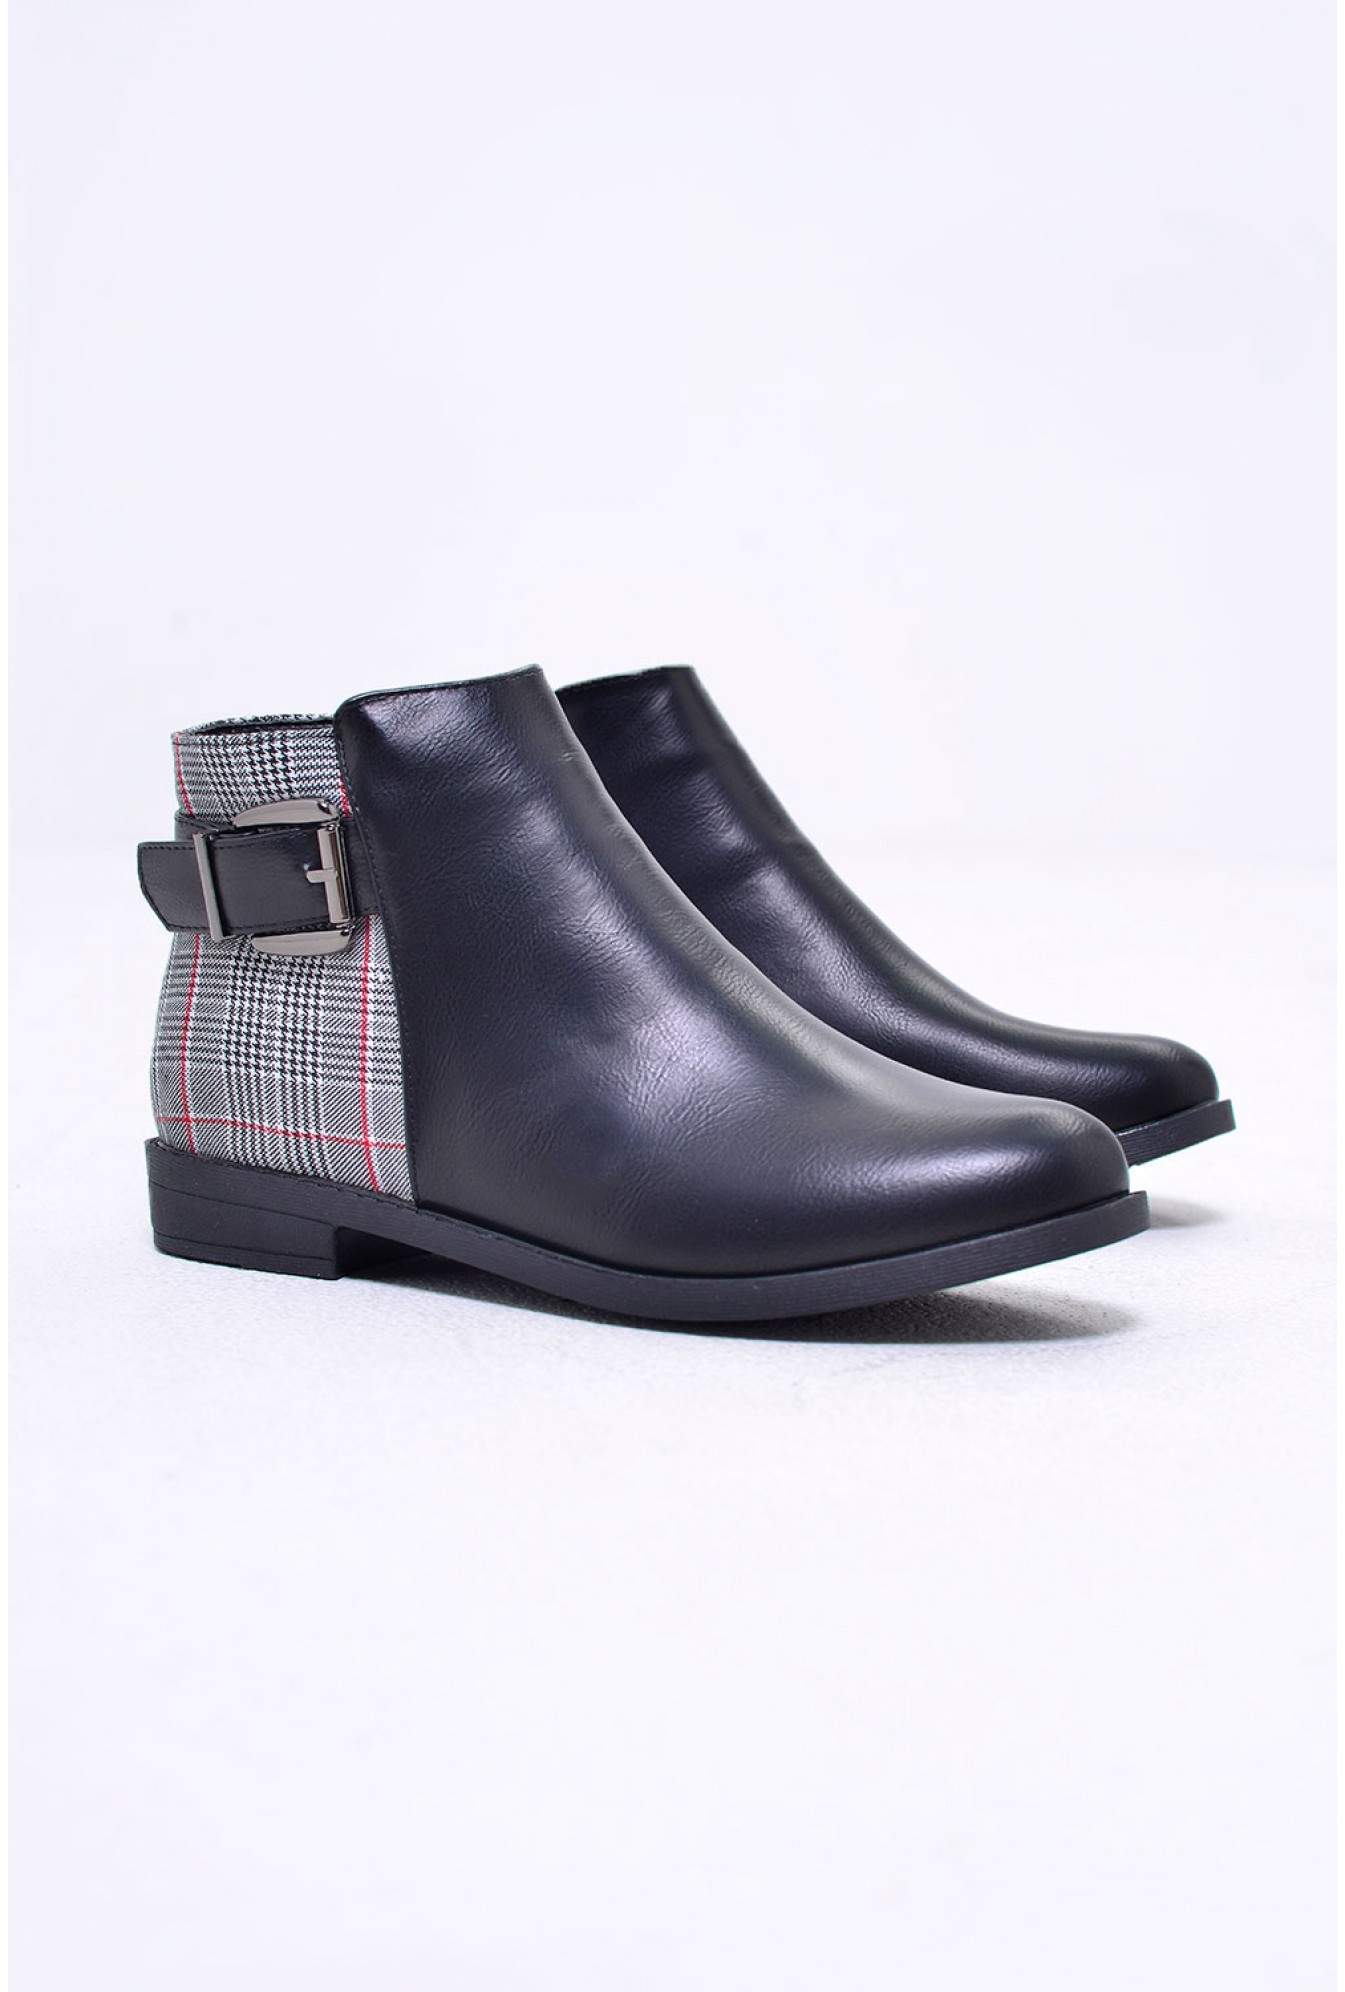 51fd084d6ea8 No Doubt Sarah Ankle Boots in Black With Contrast Check Panel ...